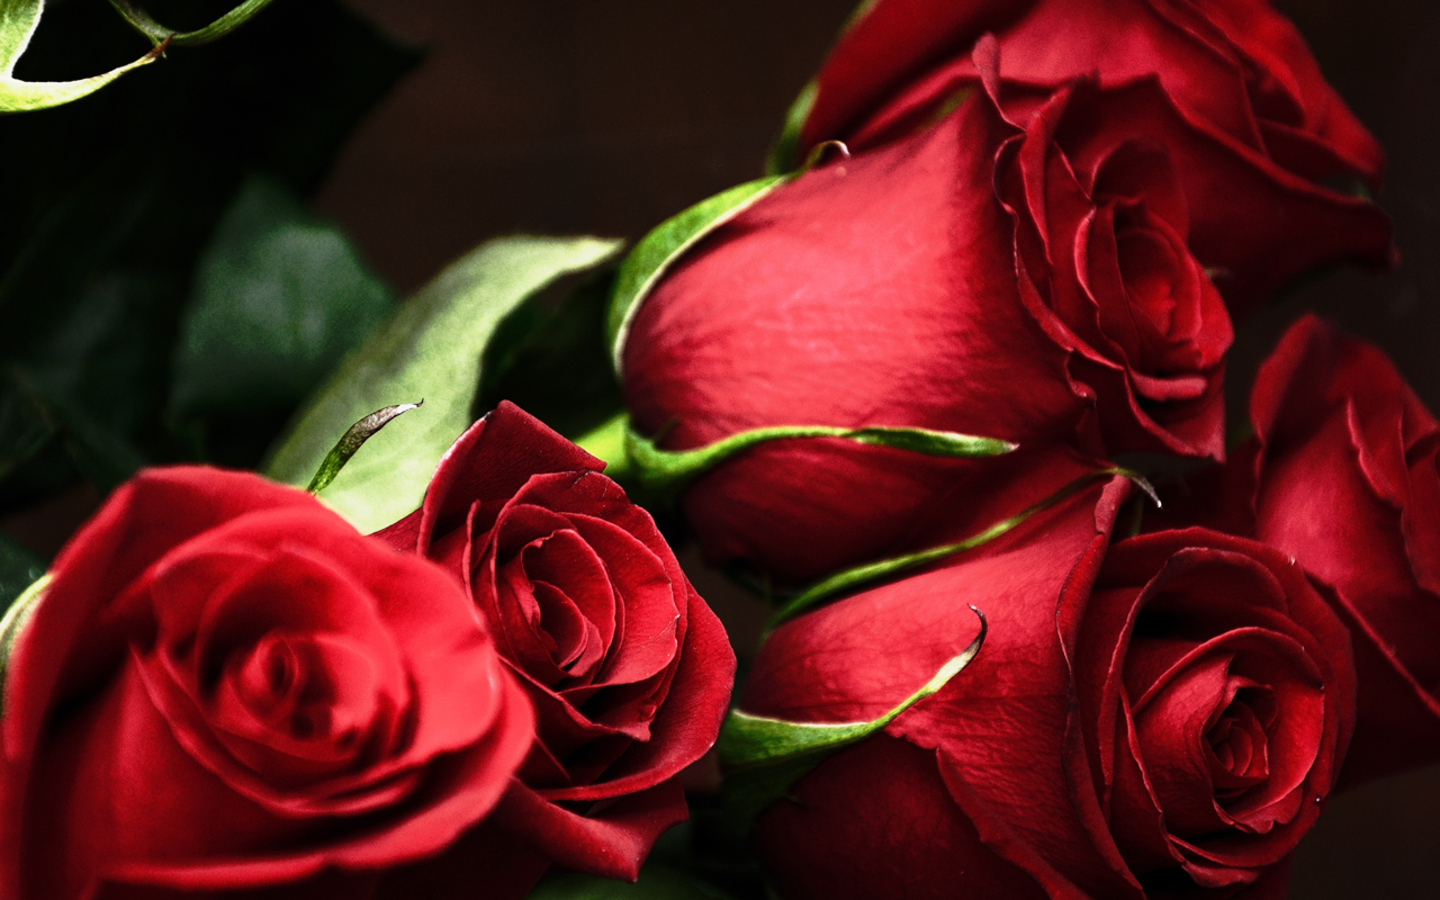 red rose i love you wallpaper - photo #49